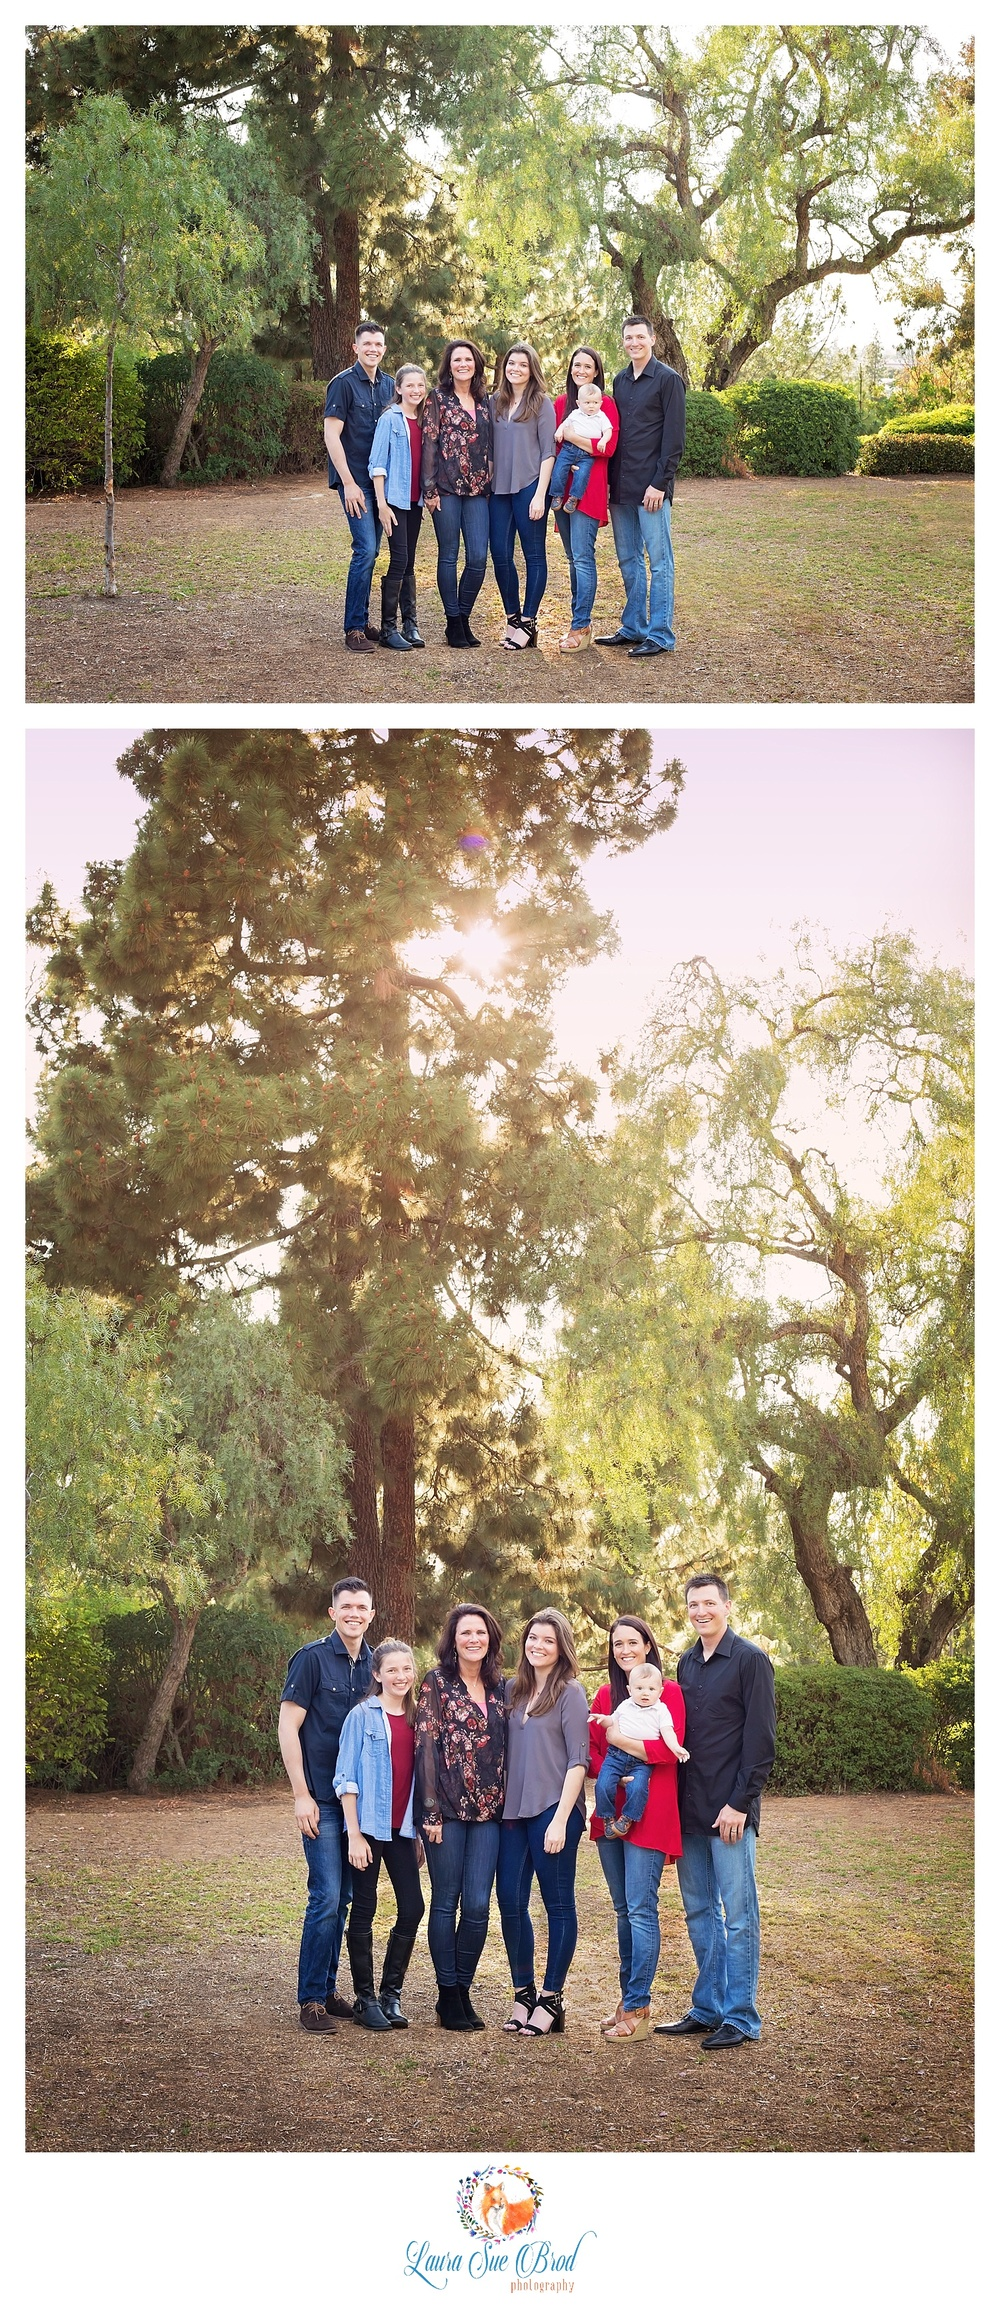 Family portraits. The McNamara Family. Family session at park during golden hour in Costa Mesa, California. Laura Sue Brod Photography - 2016  www.laurasuebrod.com